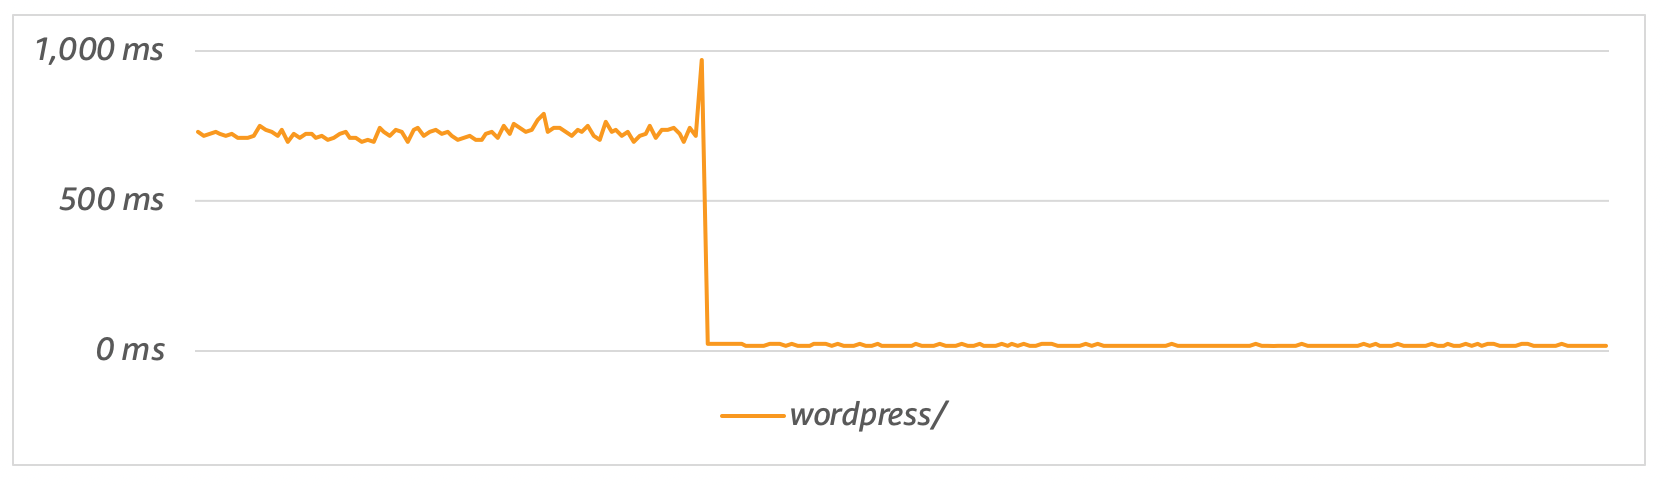 There is a 35X improvement when using OPCache with files stored on Amazon EFS (from 759 ms to 22 ms).